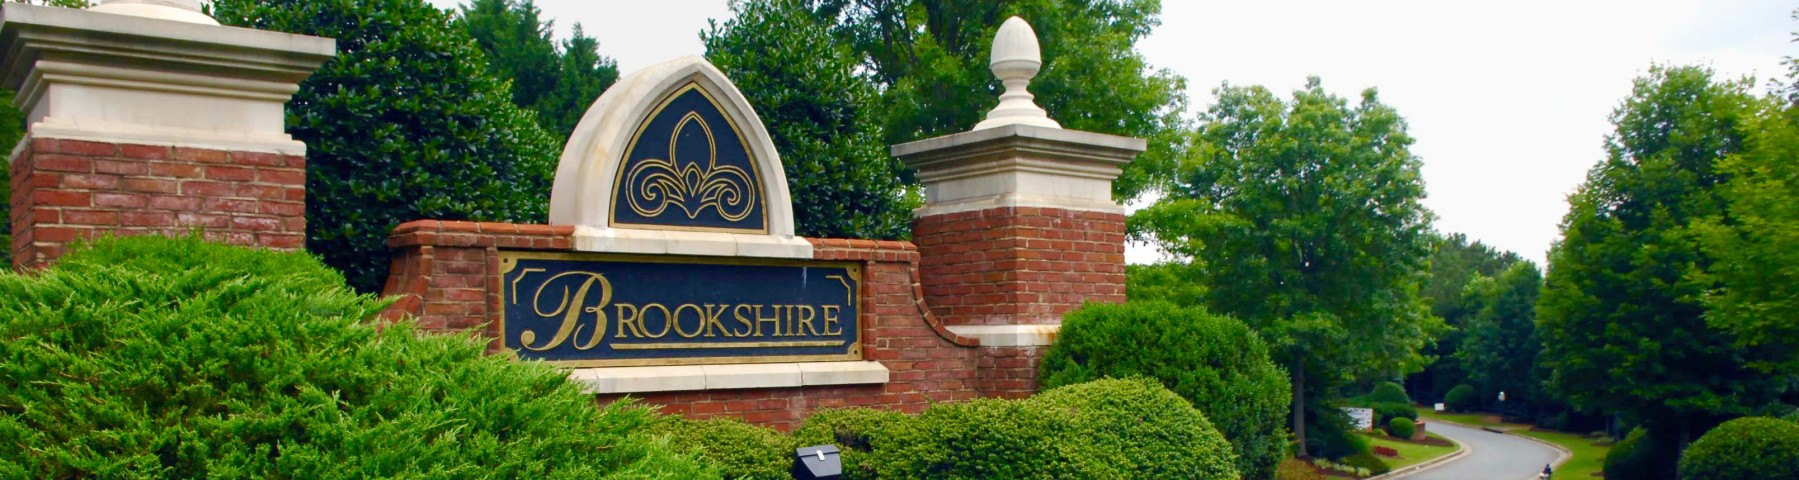 The Brookshire Subdivision